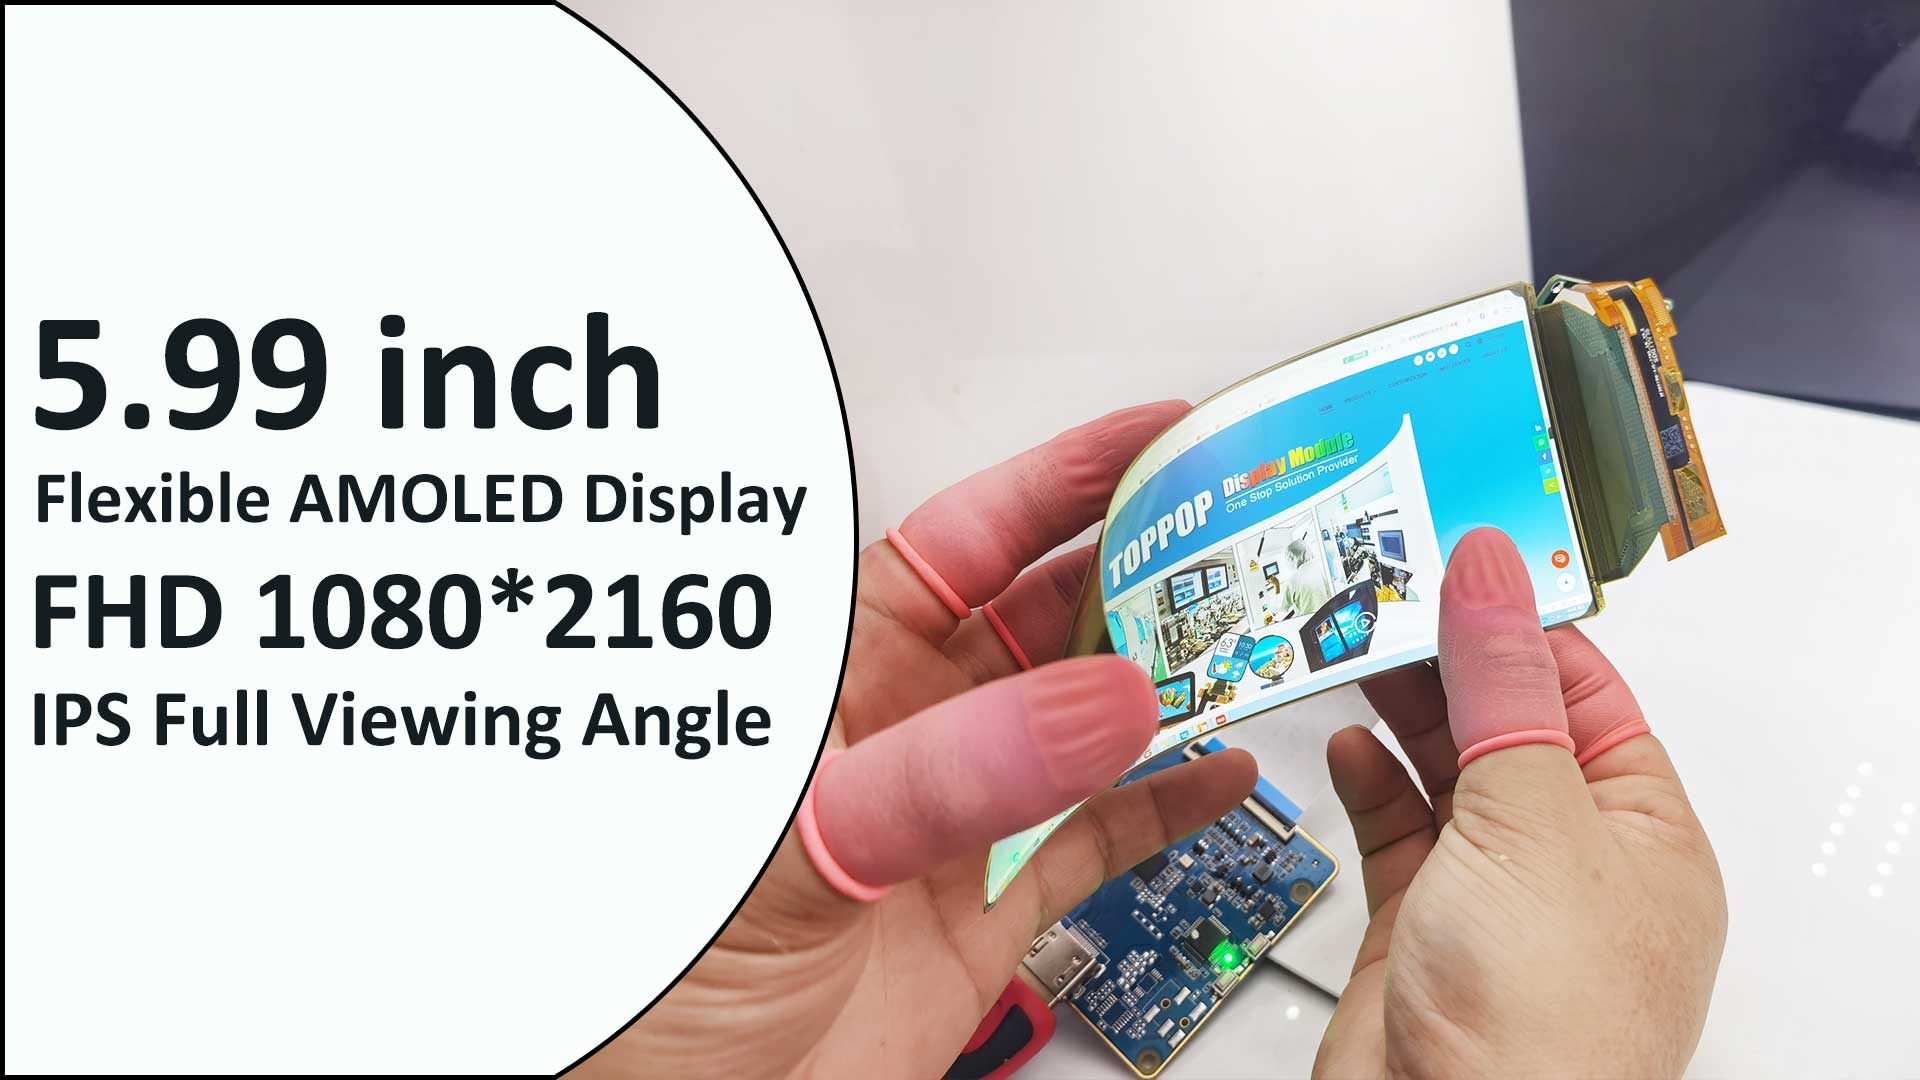 5.99 inch 1080*2160 Flexible AMOLED Display with Capacitive Touch Panel 6 inch Bendable OLED